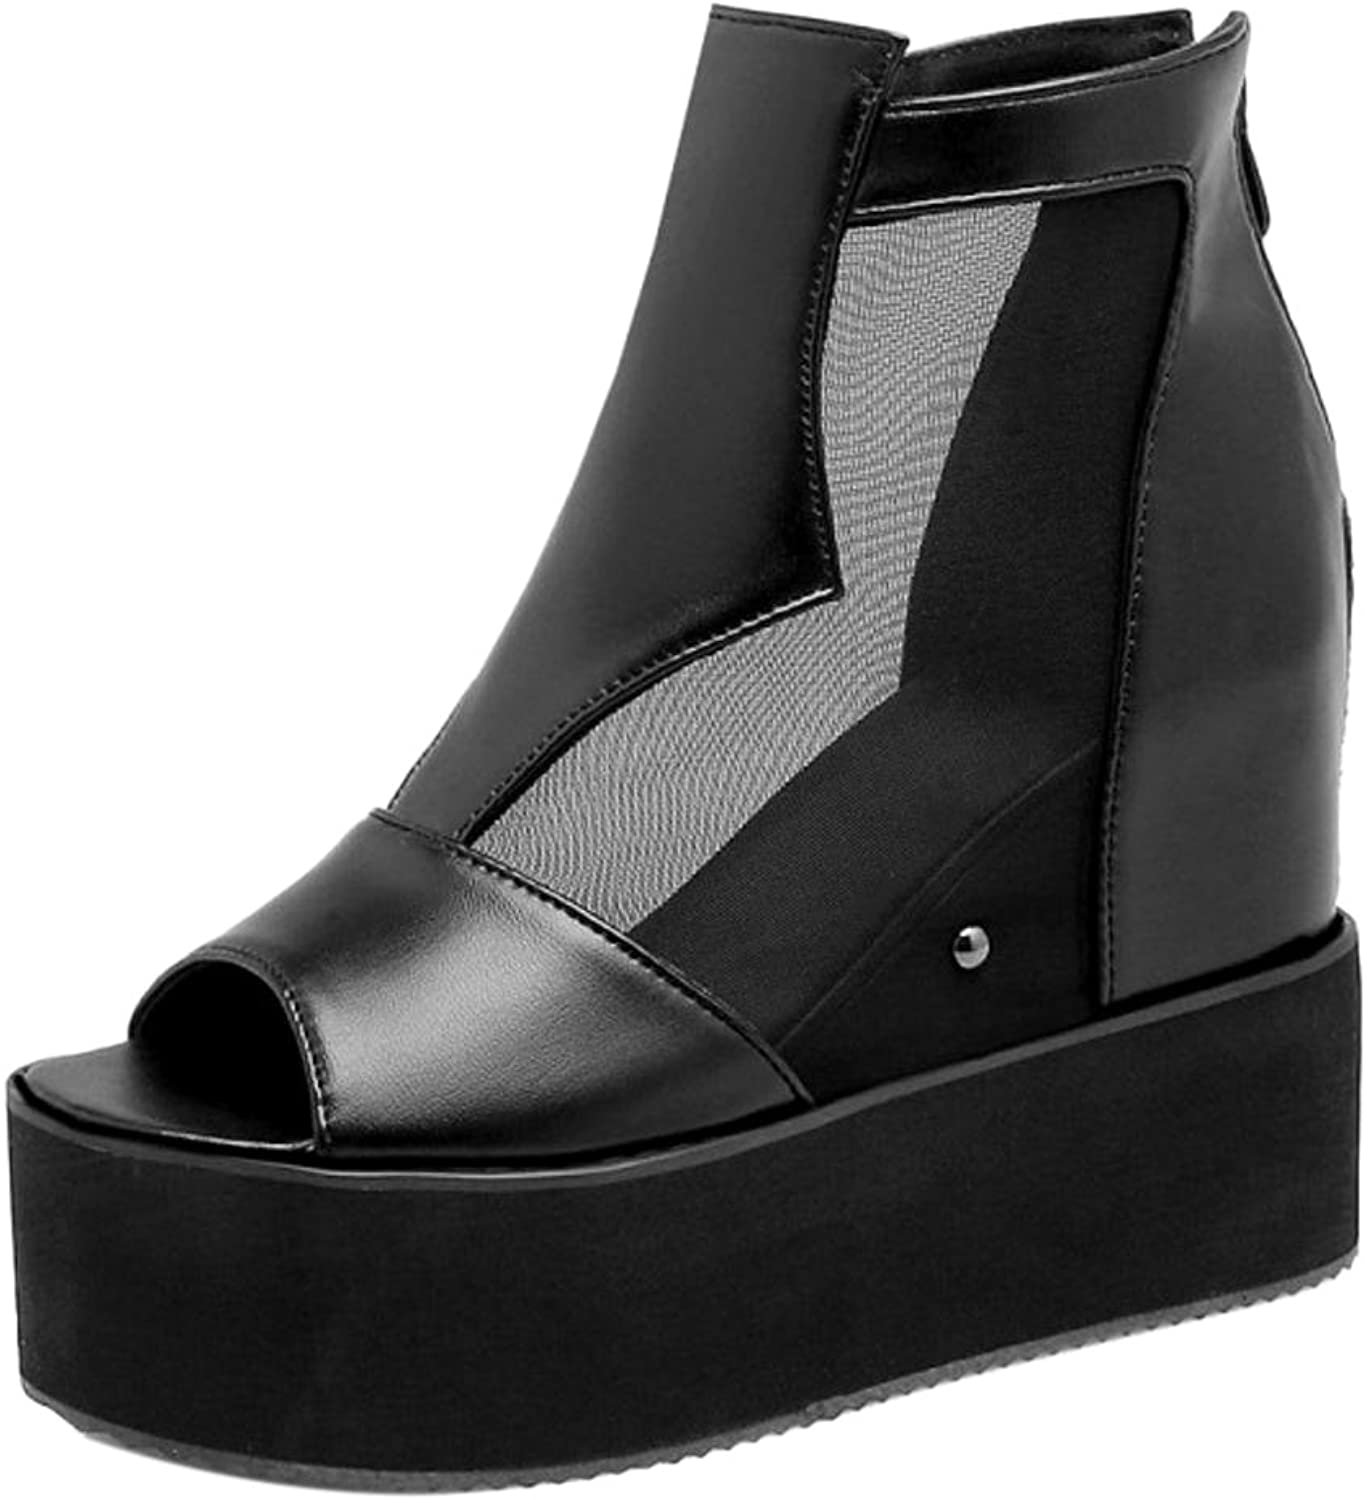 KemeKiss Women Wedge Heel Sandals Zipper